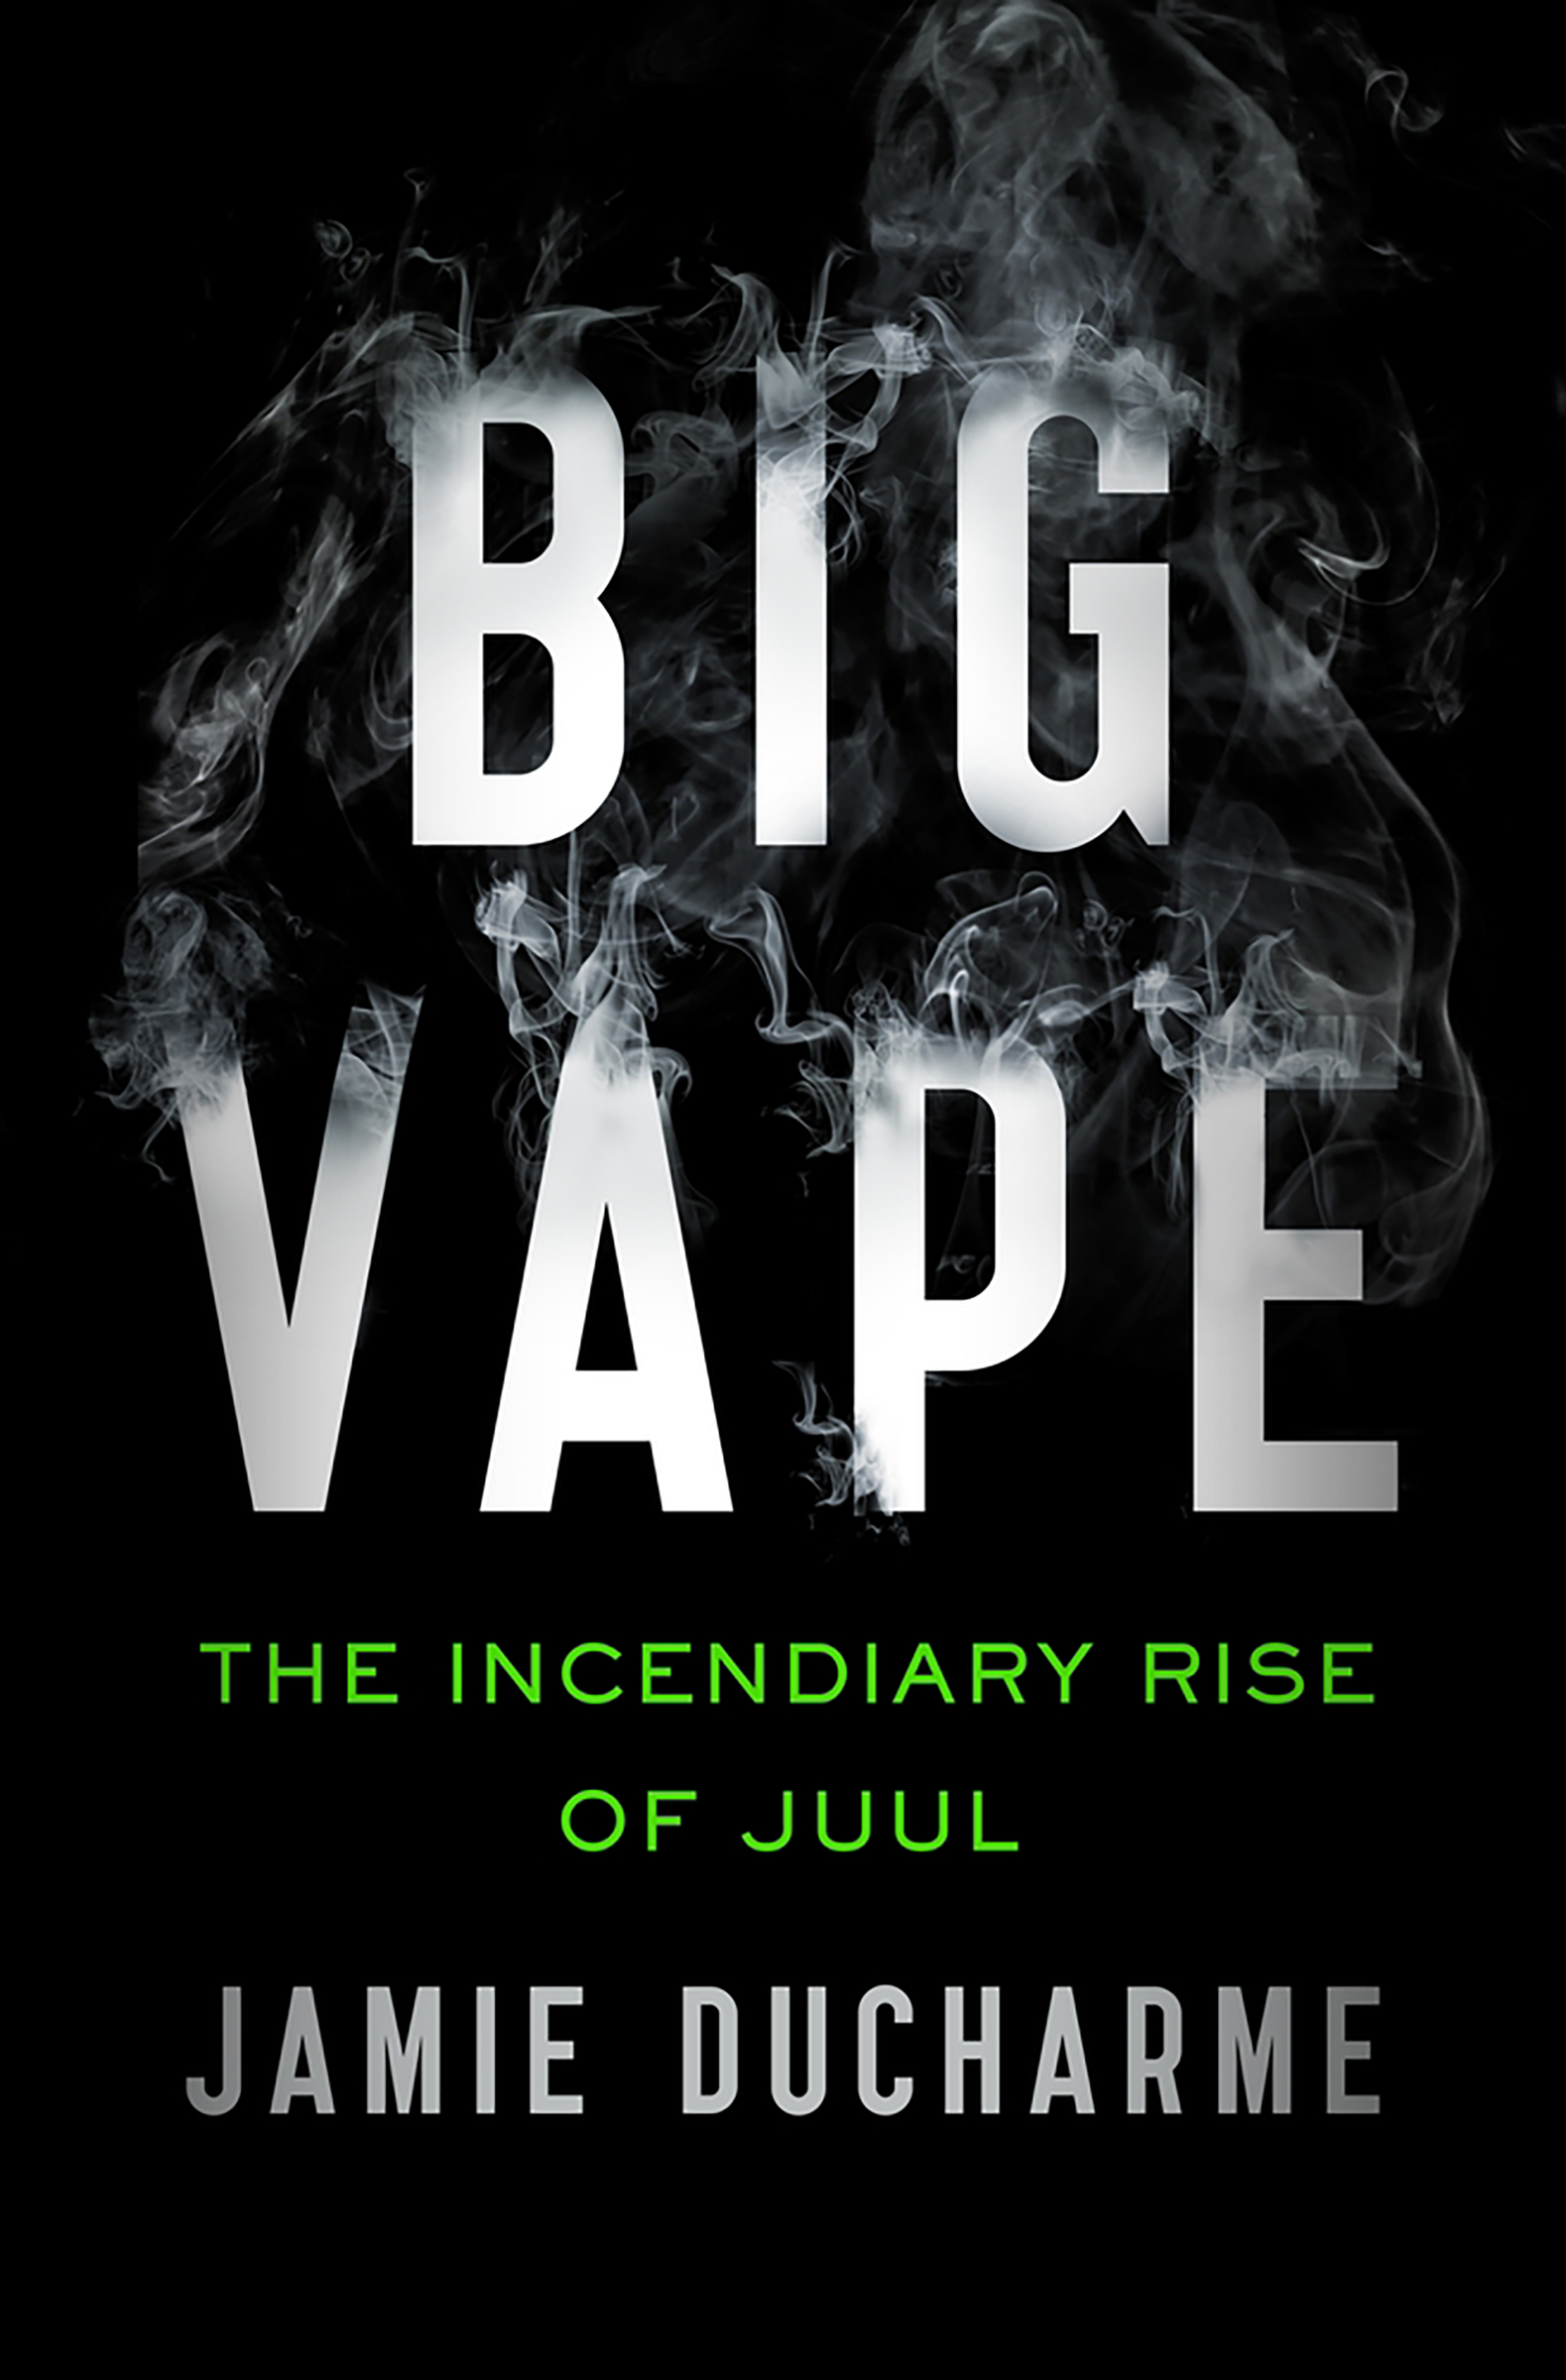 Ducharme's book, Big Vape: The Incendiary Rise of Juul, out May 25